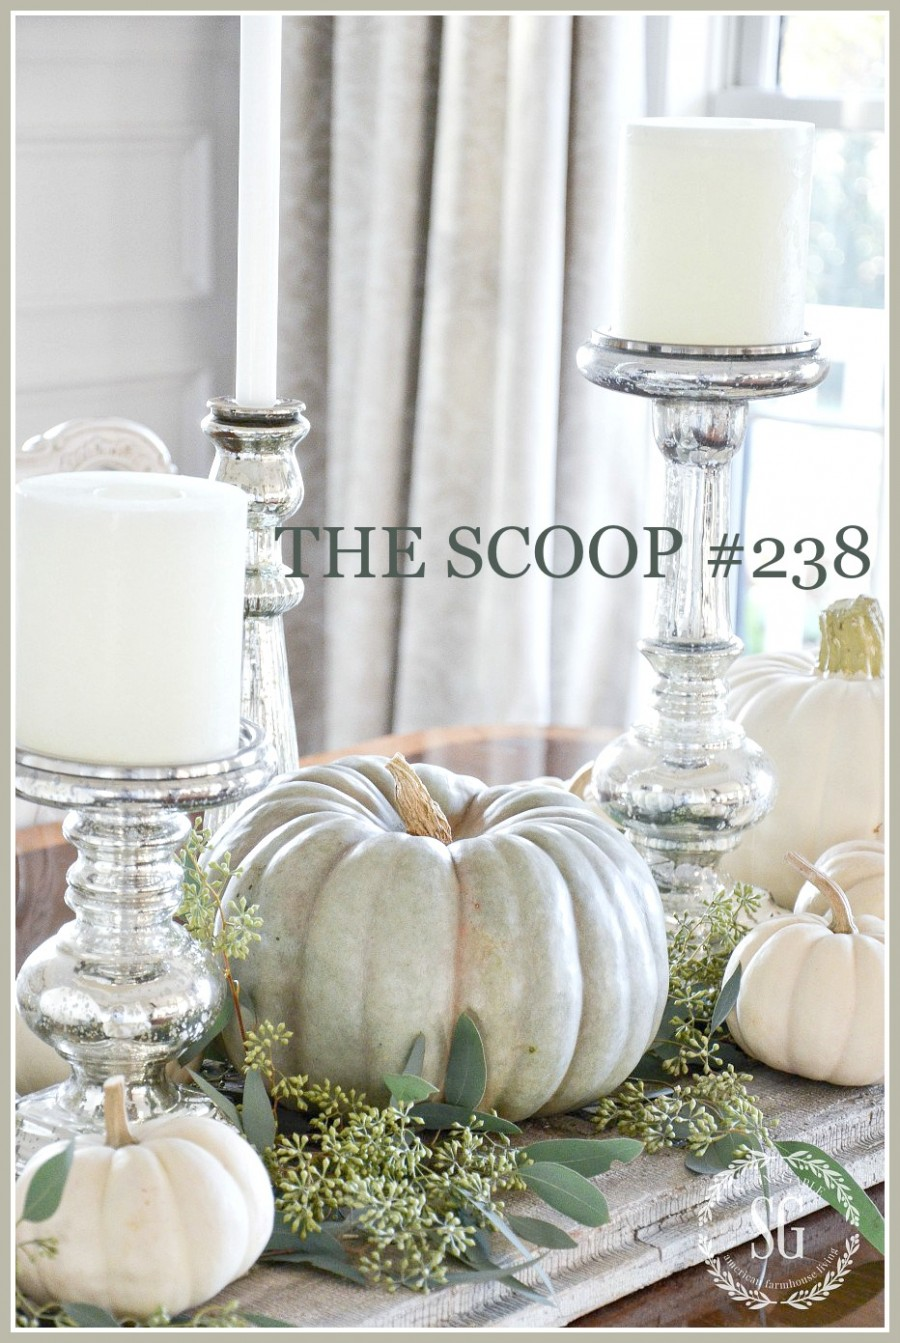 THE SCOOP- Featuring the best of home and garden blogs around the web